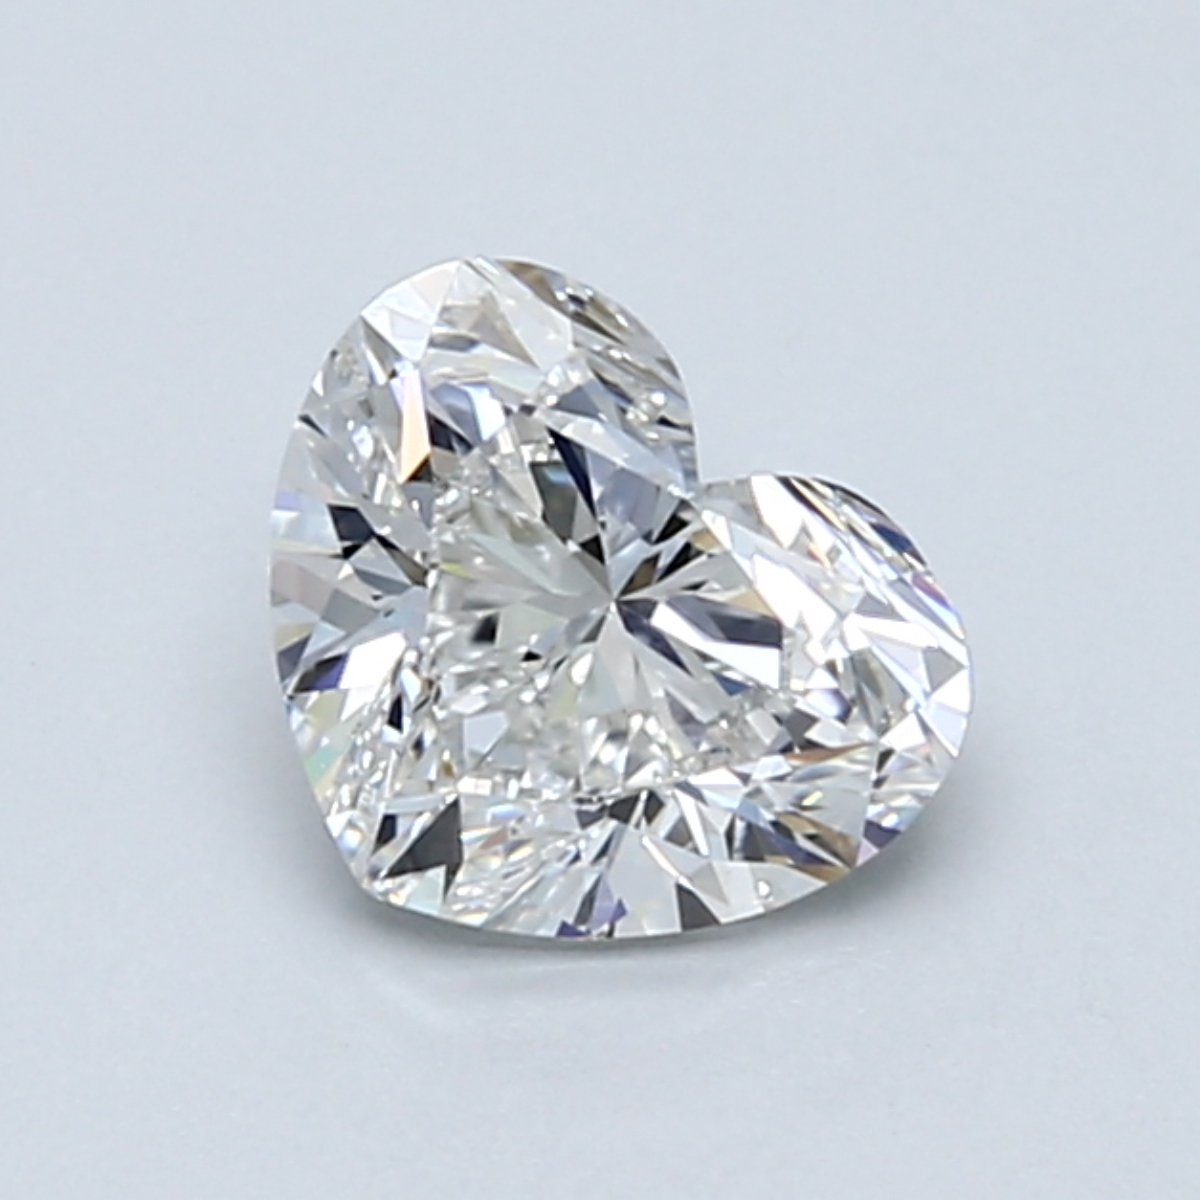 1.01 carat Heart Diamond, Very Good cut, graded by the GIA laboratories.